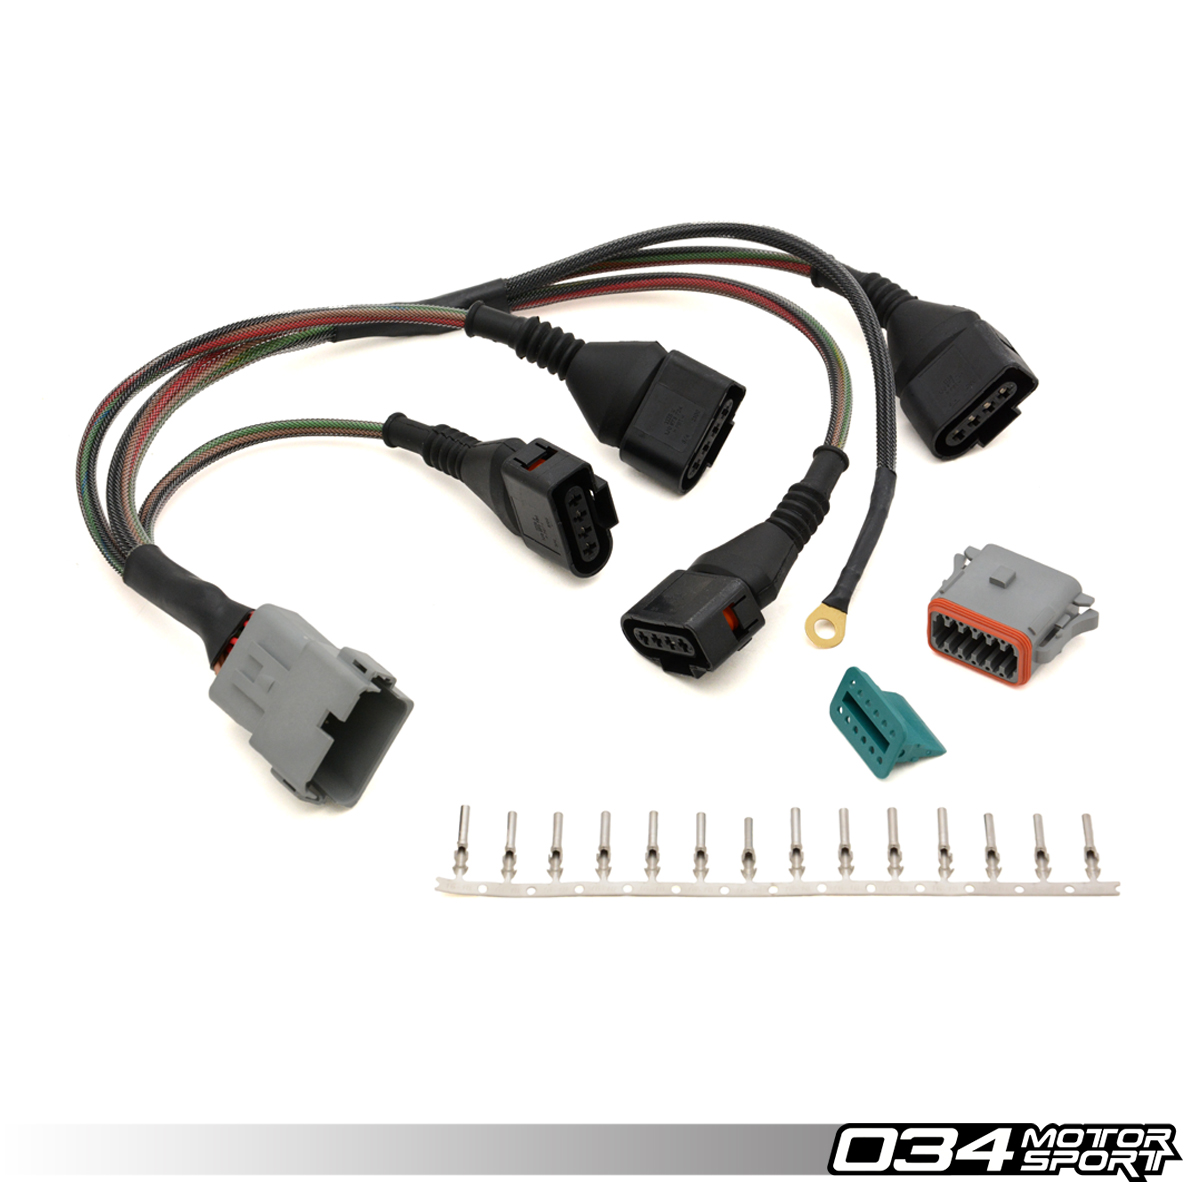 repair update harness audi volkswagen 18t with 4 wire coils 034motorsport 034 701 0004 2 repair update harness, audi volkswagen 1 8t with 4 wire coils engine wiring harness repair at suagrazia.org